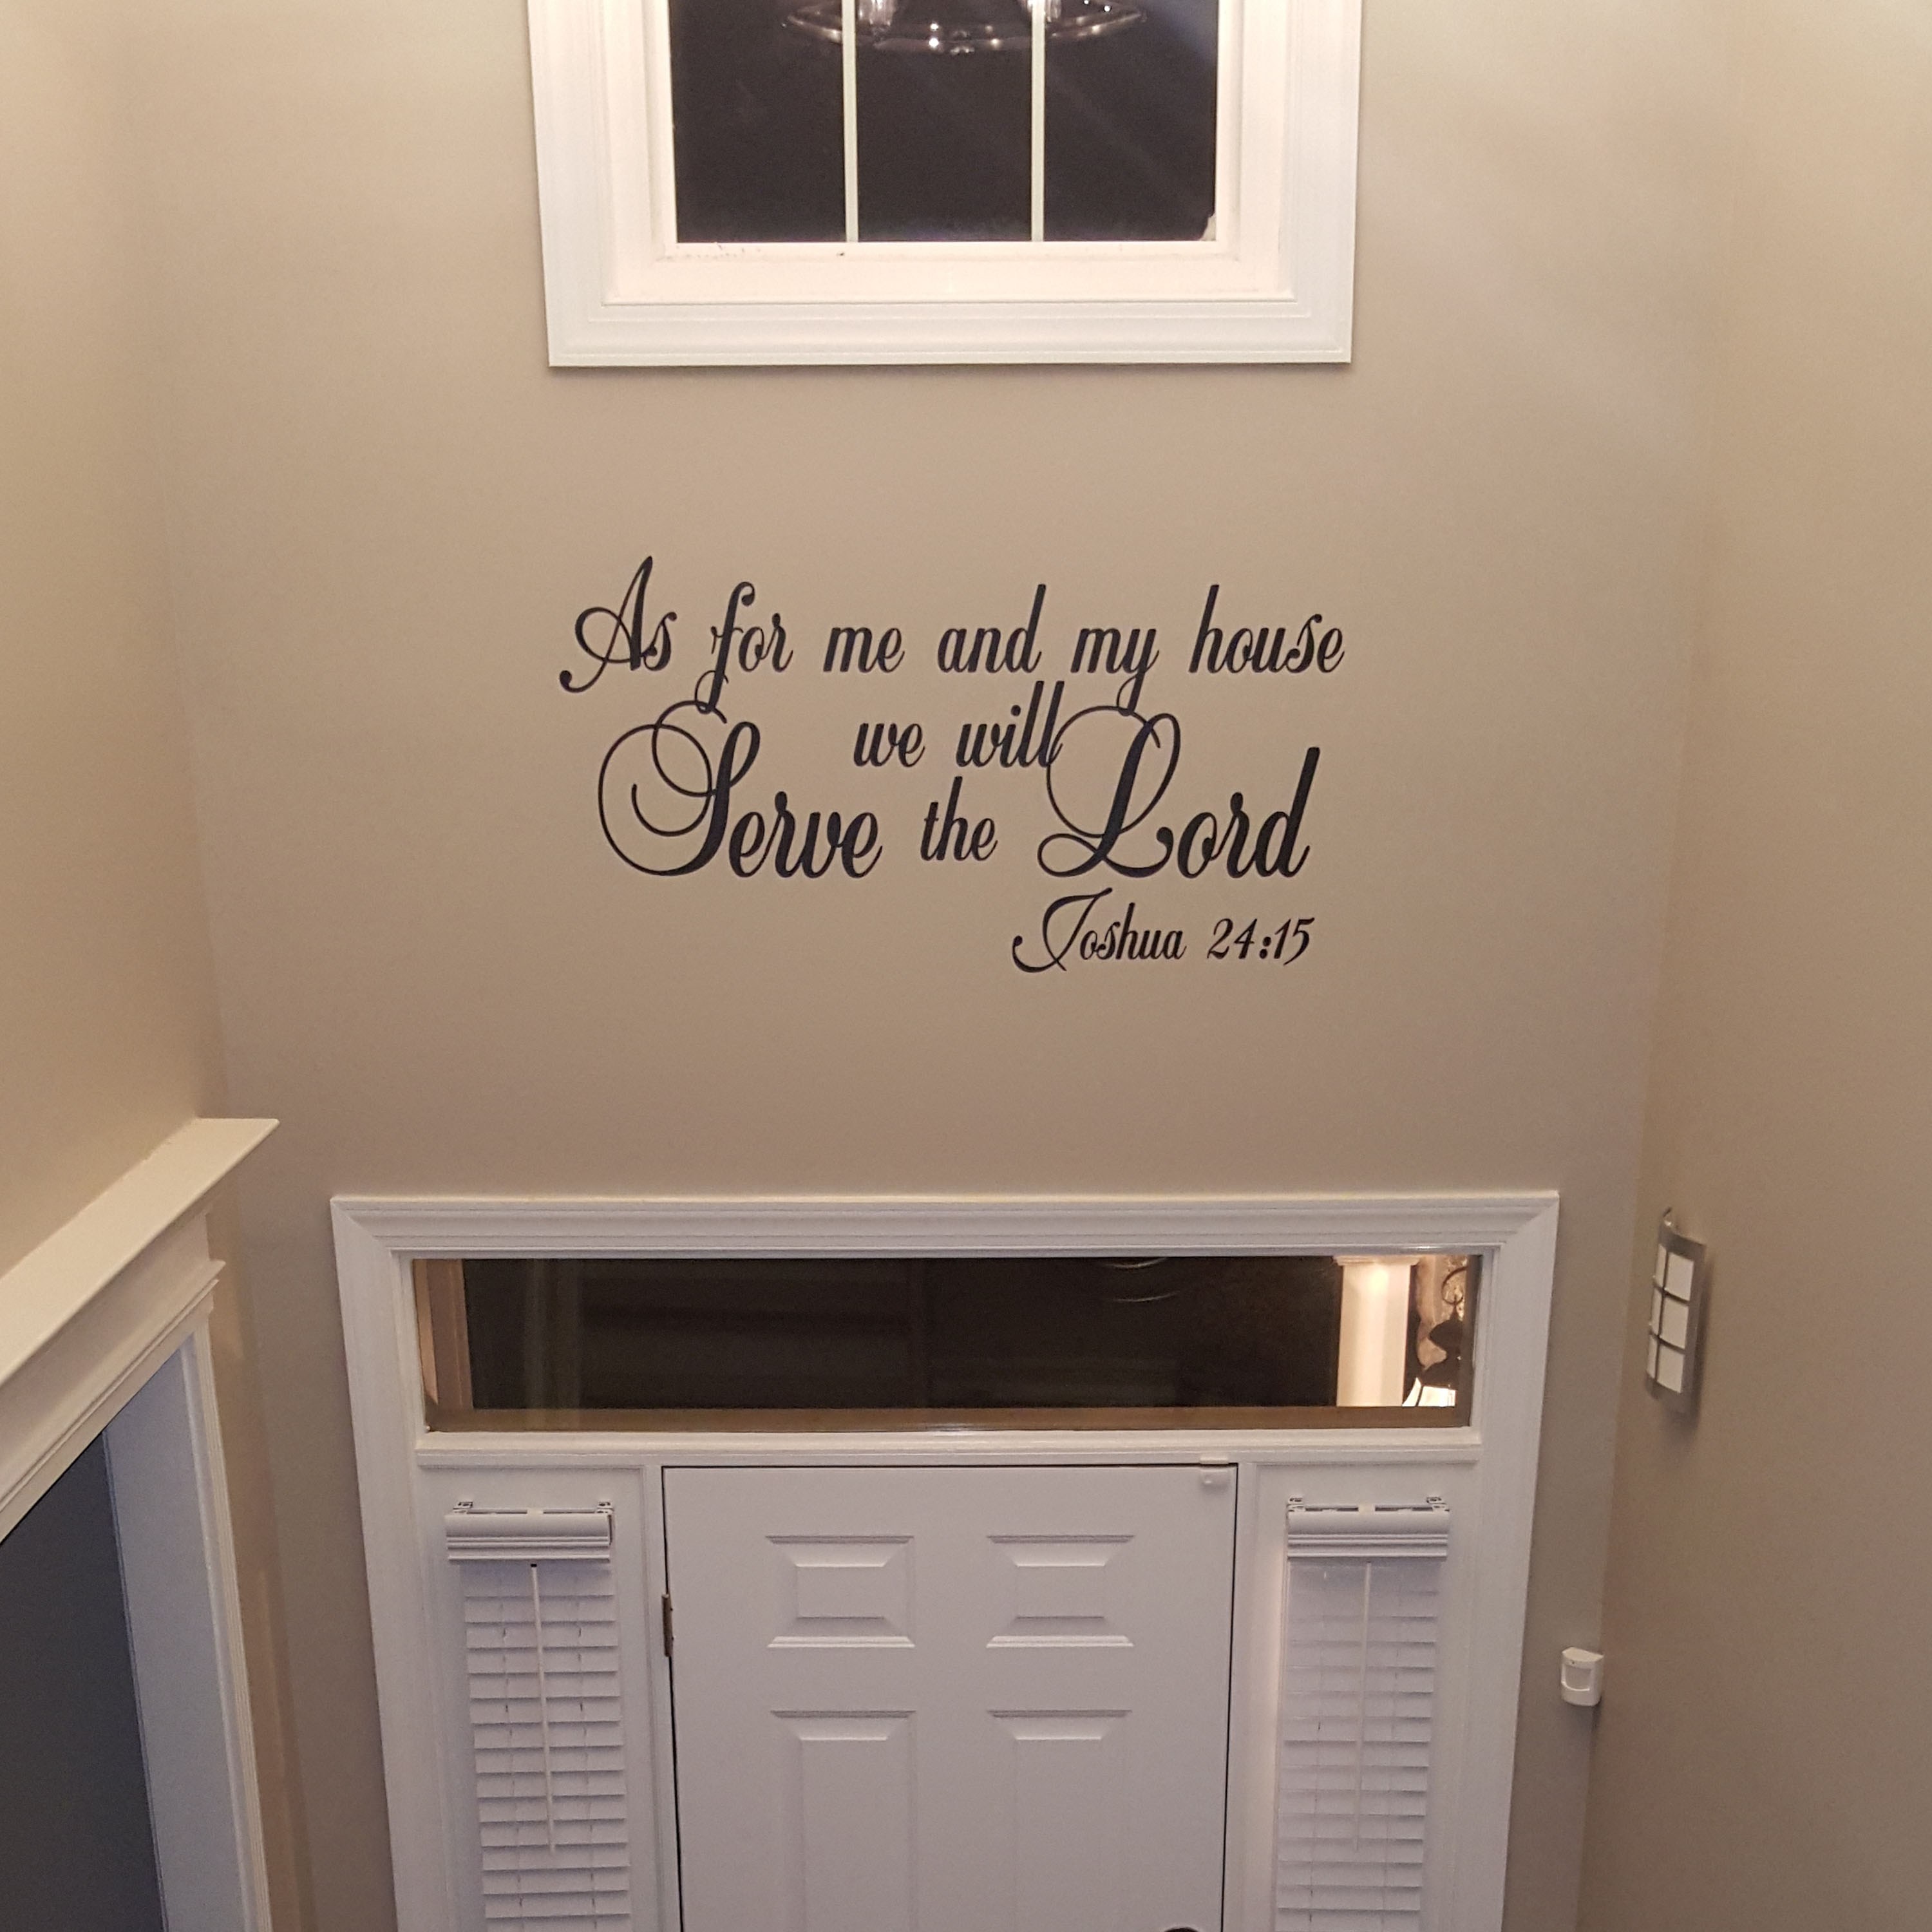 Joshua 24v15 Vinyl Wall Decal 9 As For Me And My House We Will